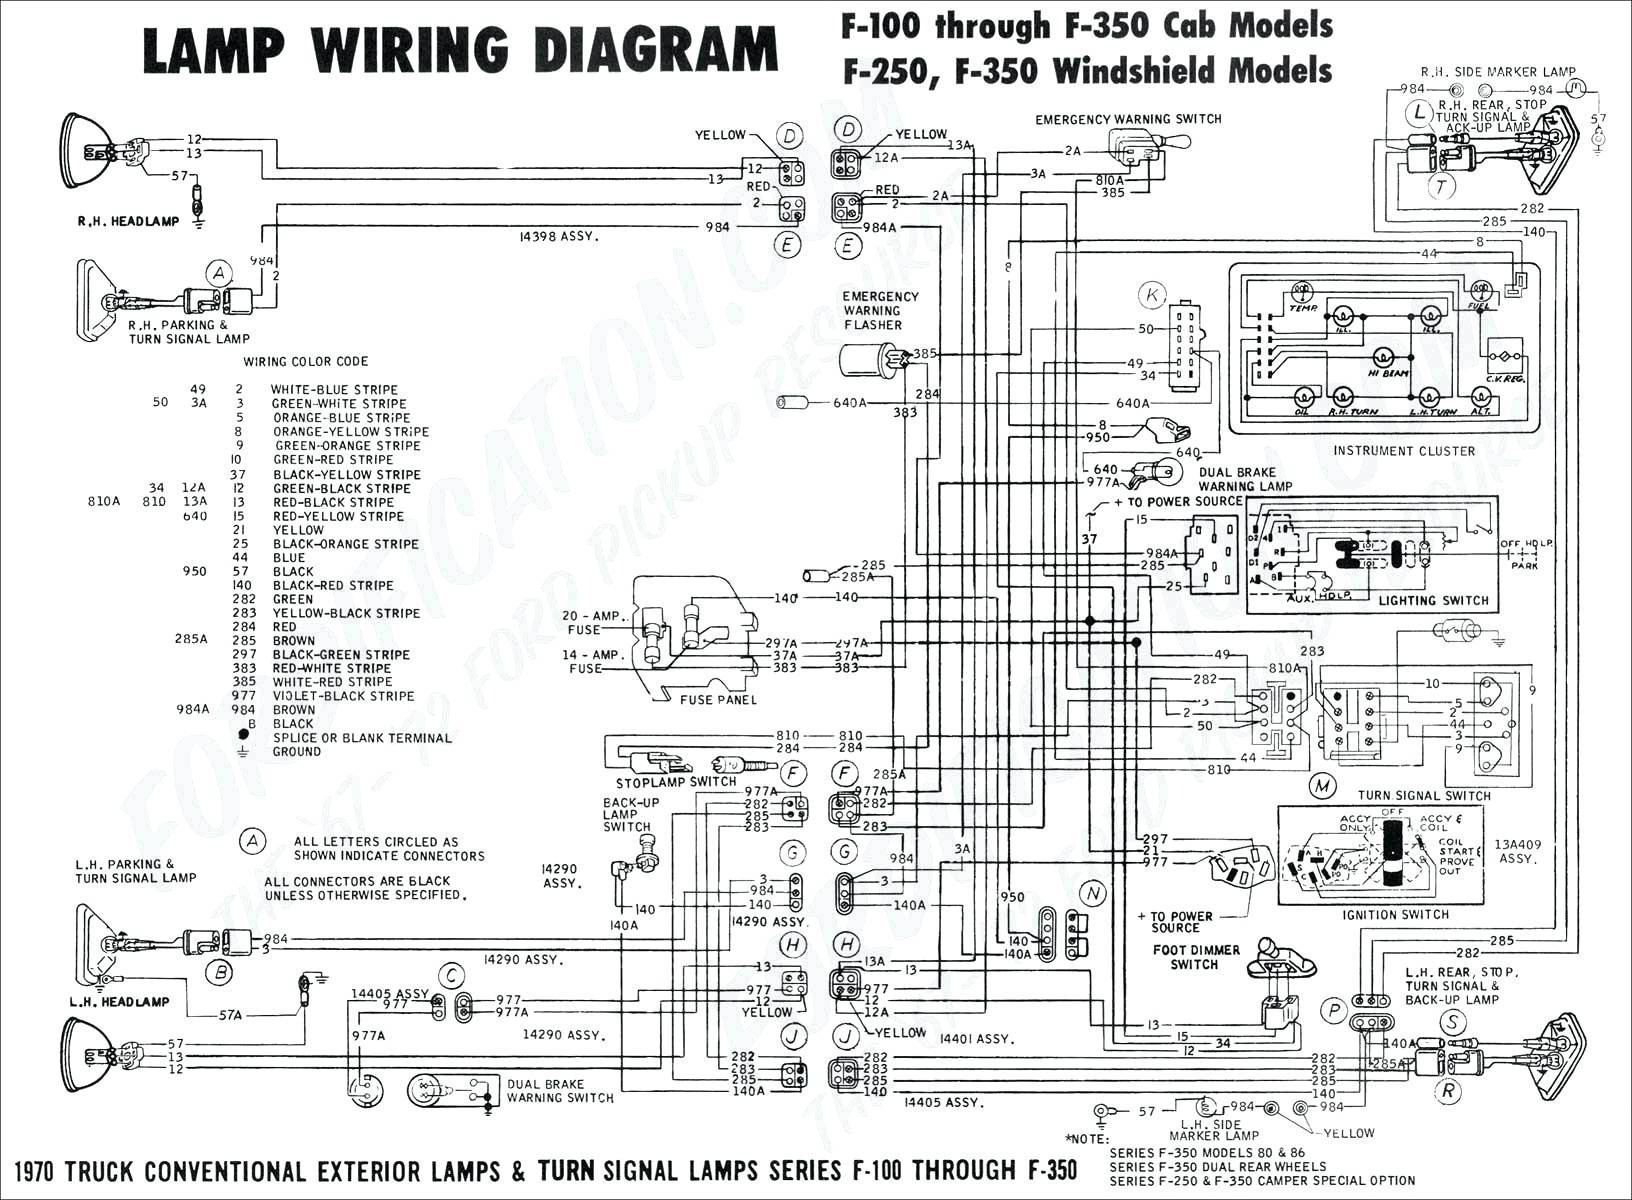 Vauxhall Corsa Engine Diagram Vauxhall Viva Wiring Diagram Trusted Wiring Diagrams • Of Vauxhall Corsa Engine Diagram